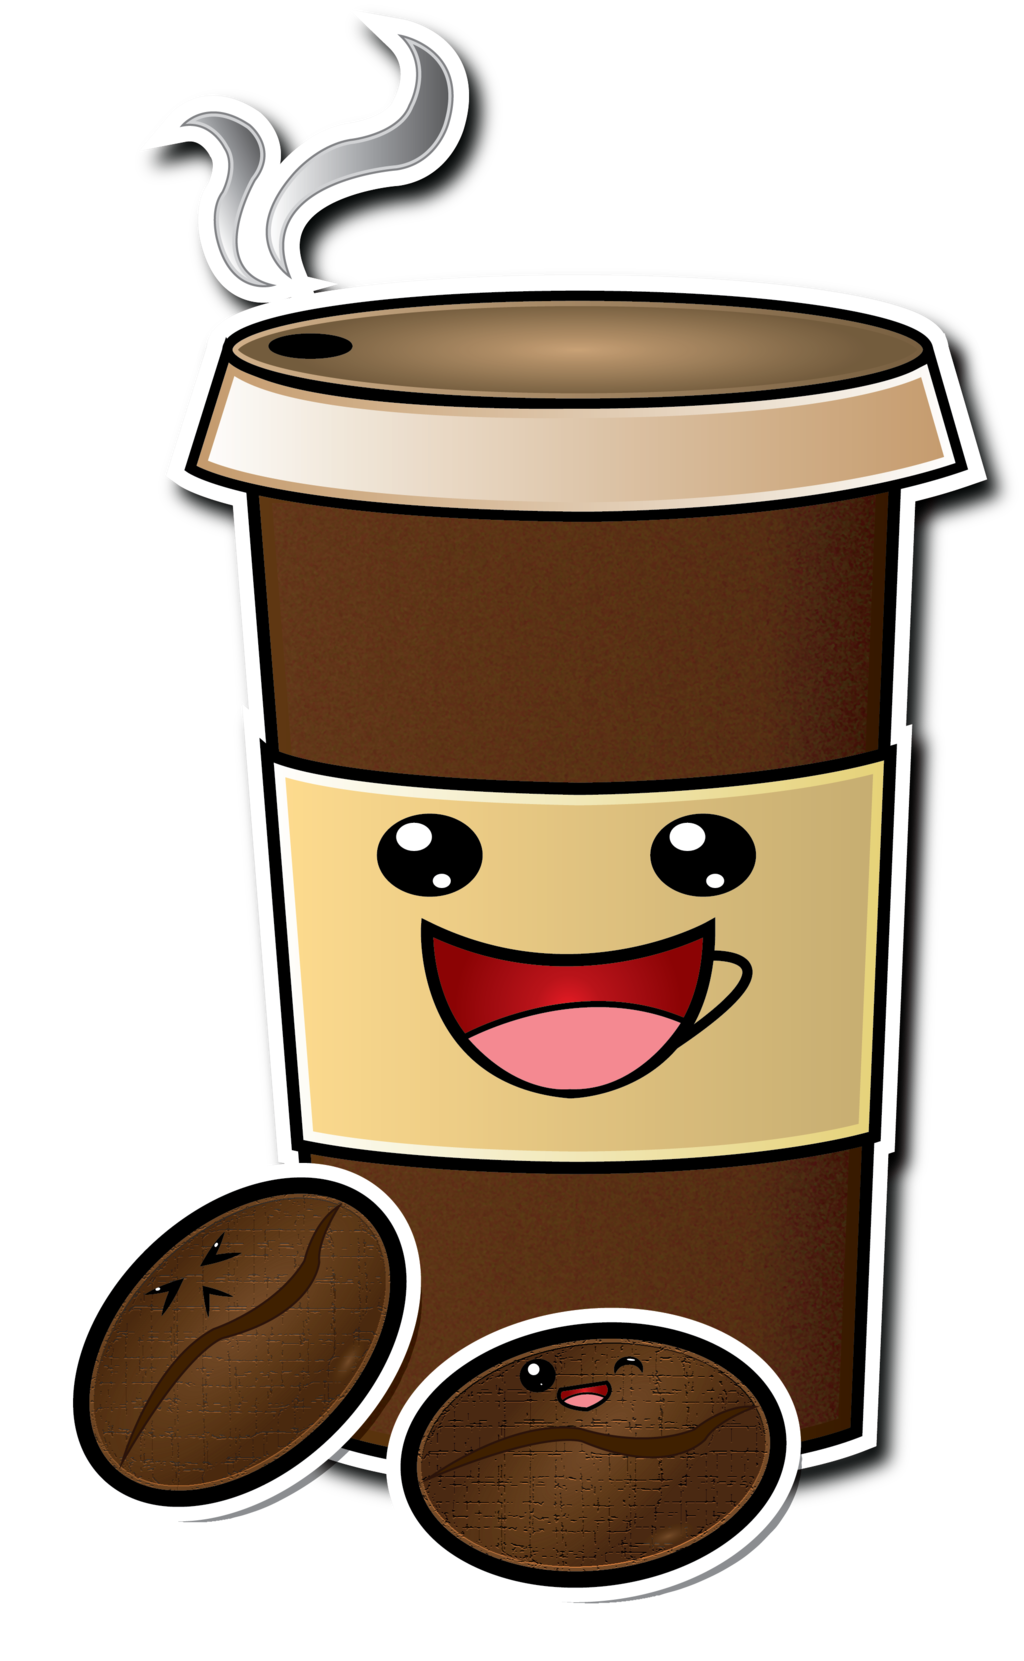 Winter clipart coffee. Cute cartoon cup drawing